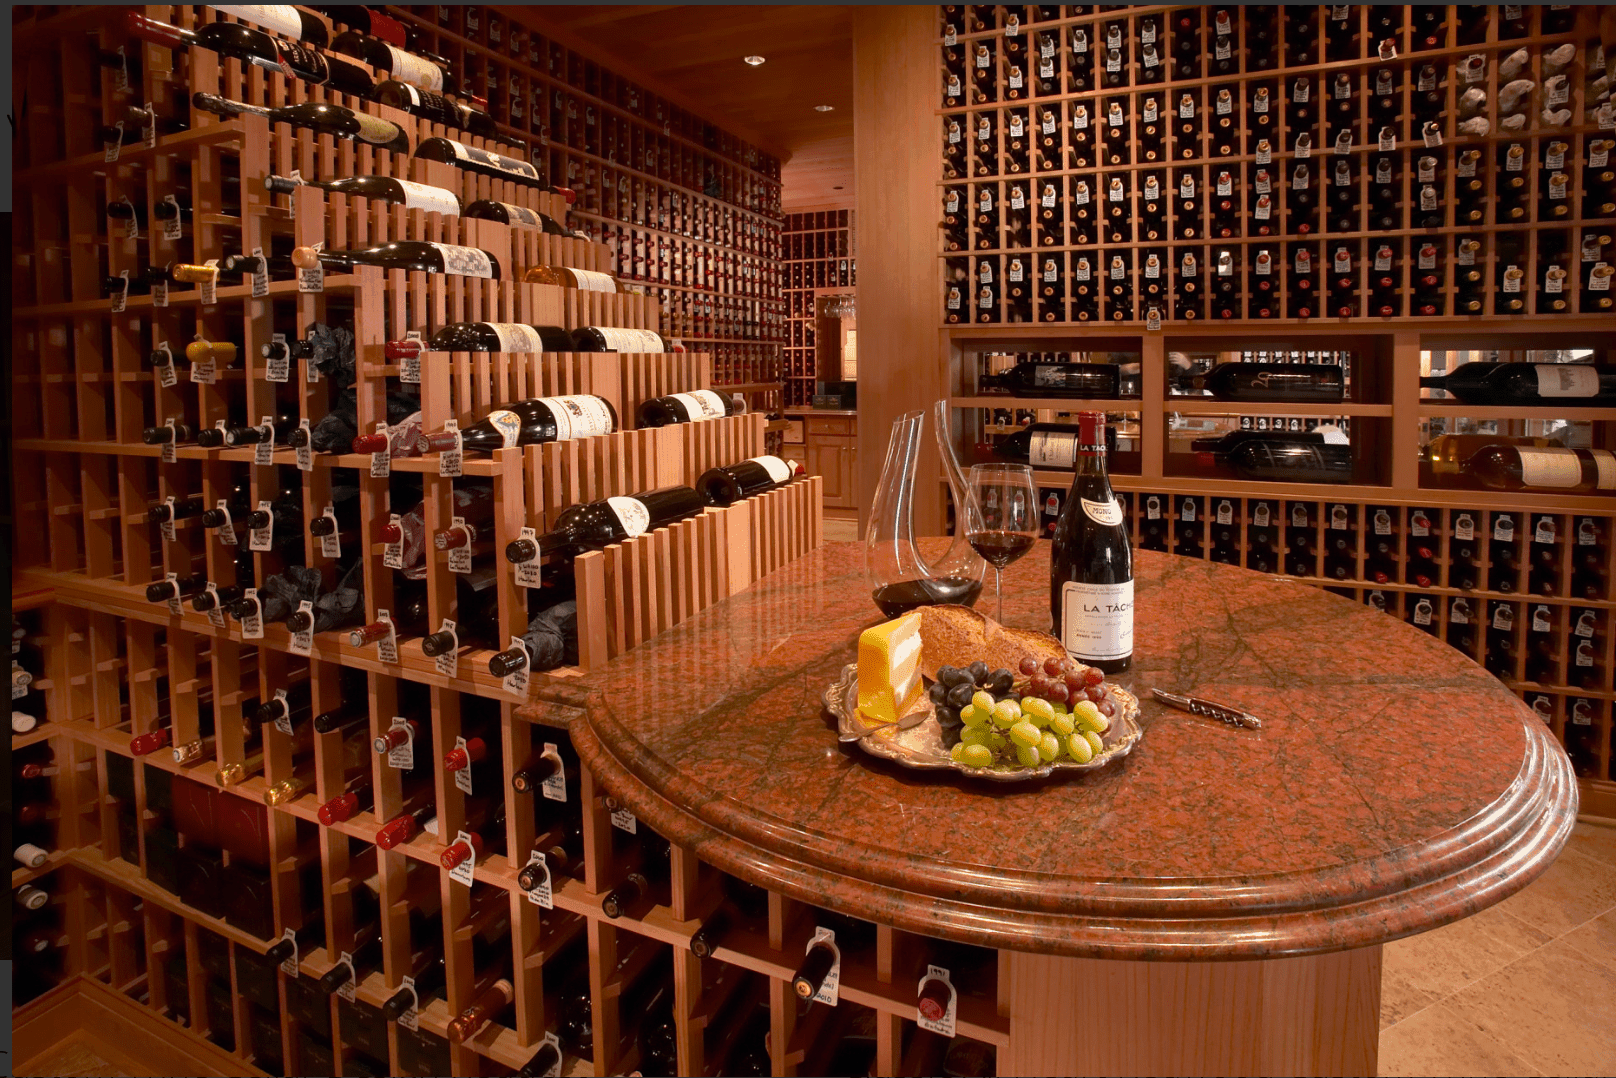 A closer look of the redwood waterfall wine storage highlighting the round marble countertop on its end.